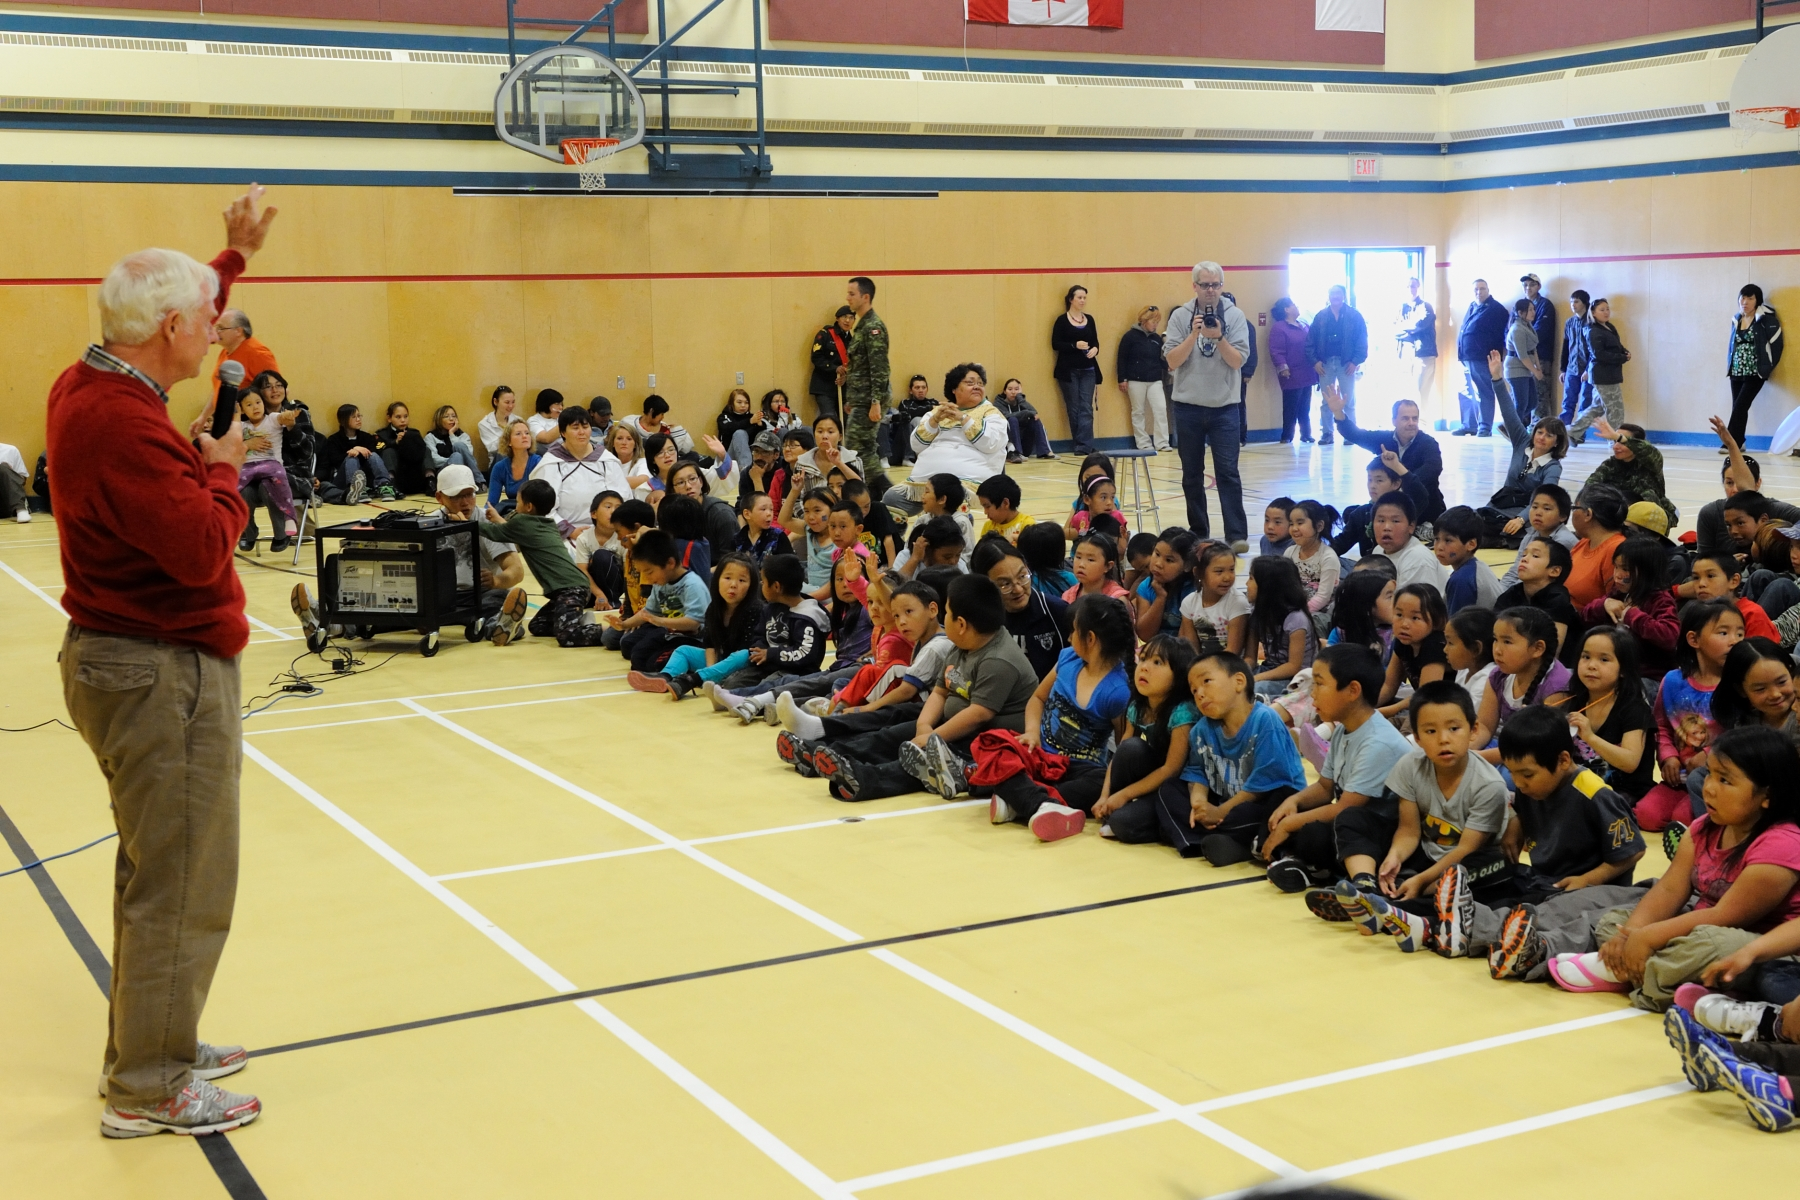 The Governor General said a few words to the students of the Tusarvik School.